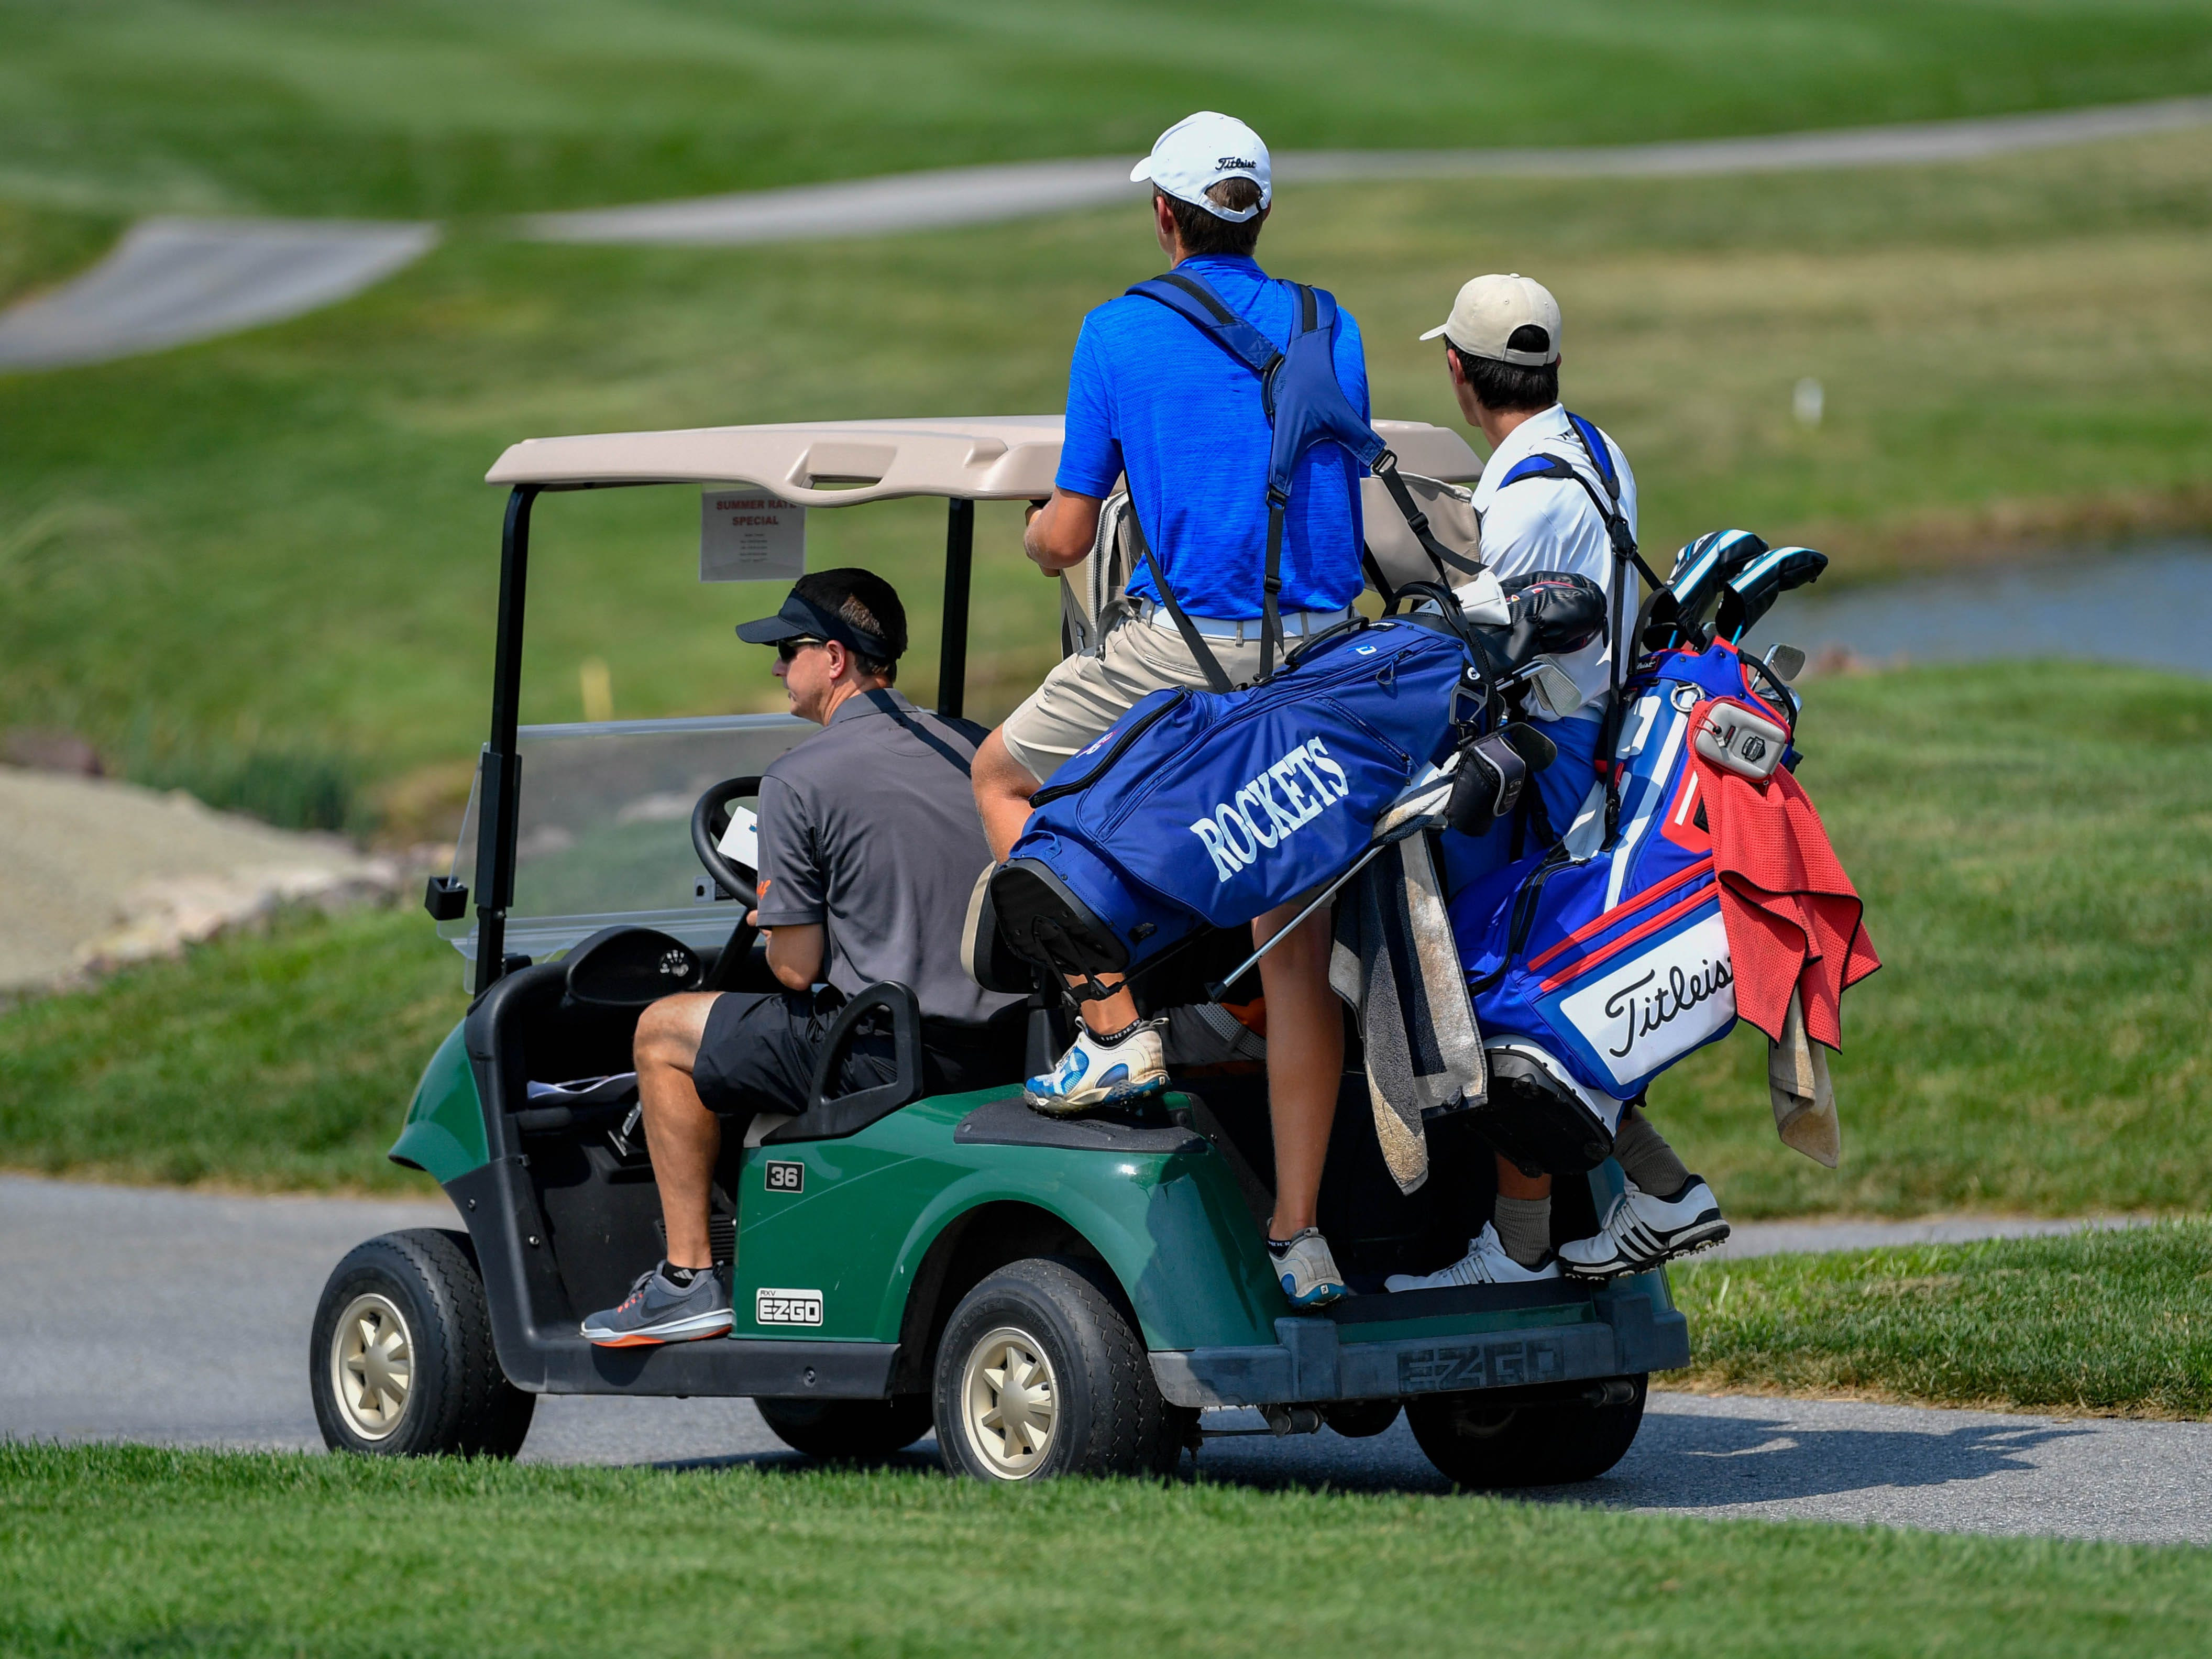 Spring Grove and Dallastown golfers hitch a ride with Northeastern's coach to the next hole during a Division I golf match at Royal Manchester Golf Links, Wednesday, Aug. 16, 2018.